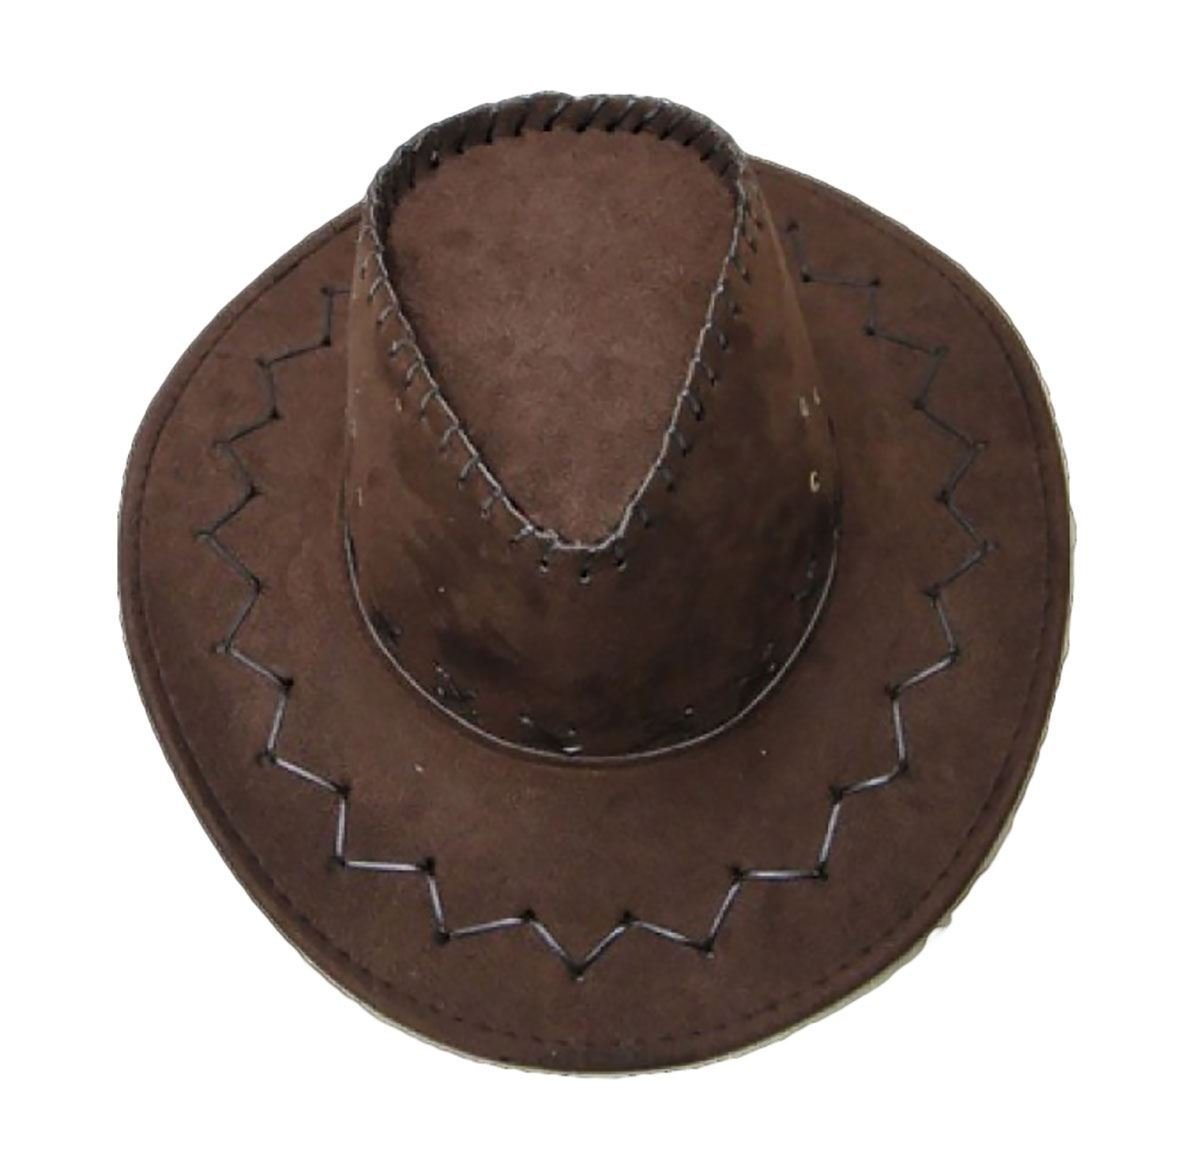 21FASHION Adults Bucket Brim Cowboy Hat Cap Unisex Western Knight Fancy Dress Accessory One Size